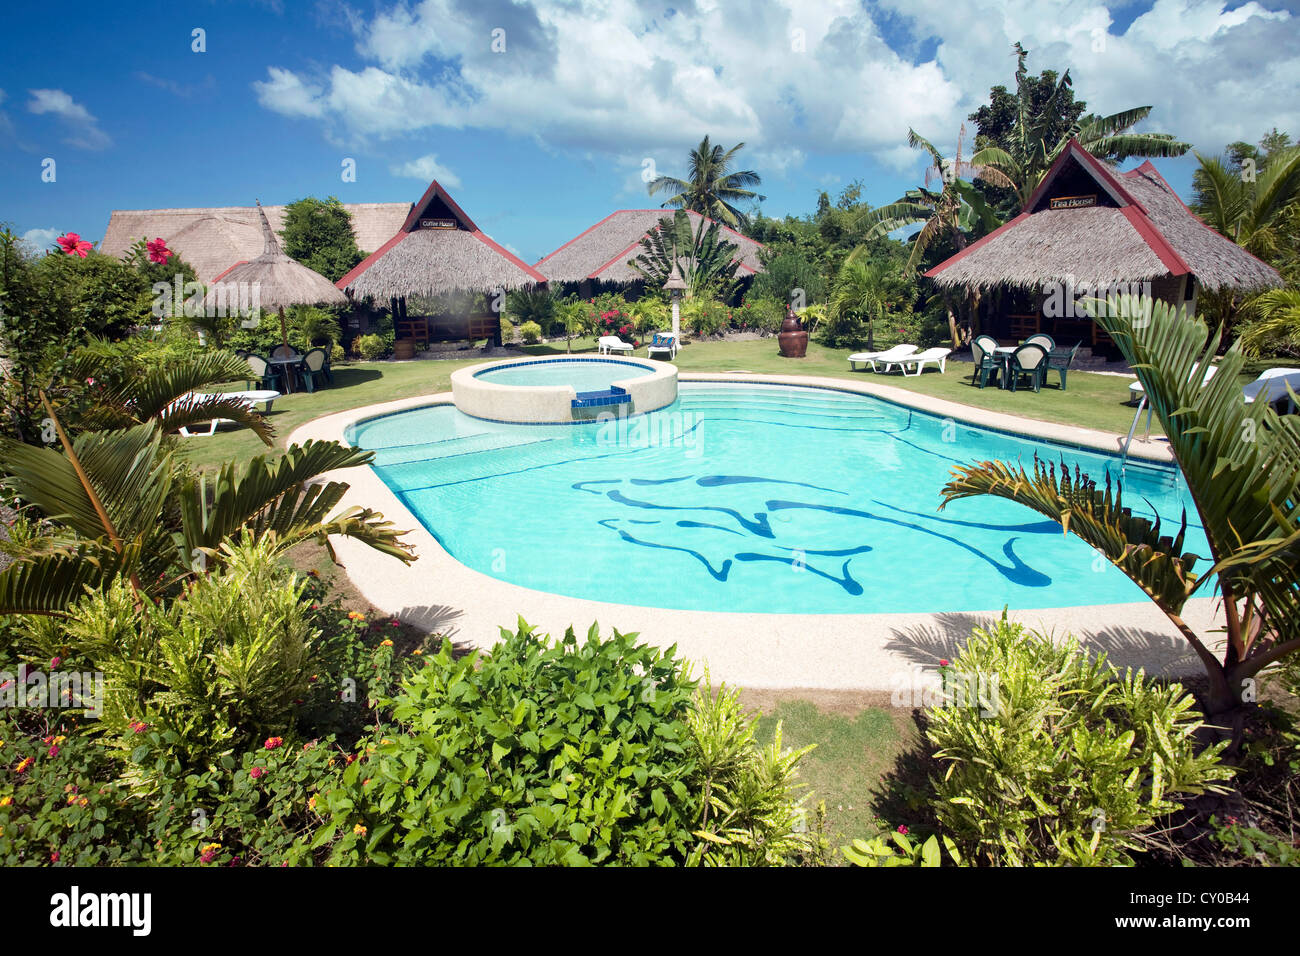 Small resort, Dolphin House on White Beach, Moalboal, Cebu, Philippines, Indo-Pacific region, Asia - Stock Image